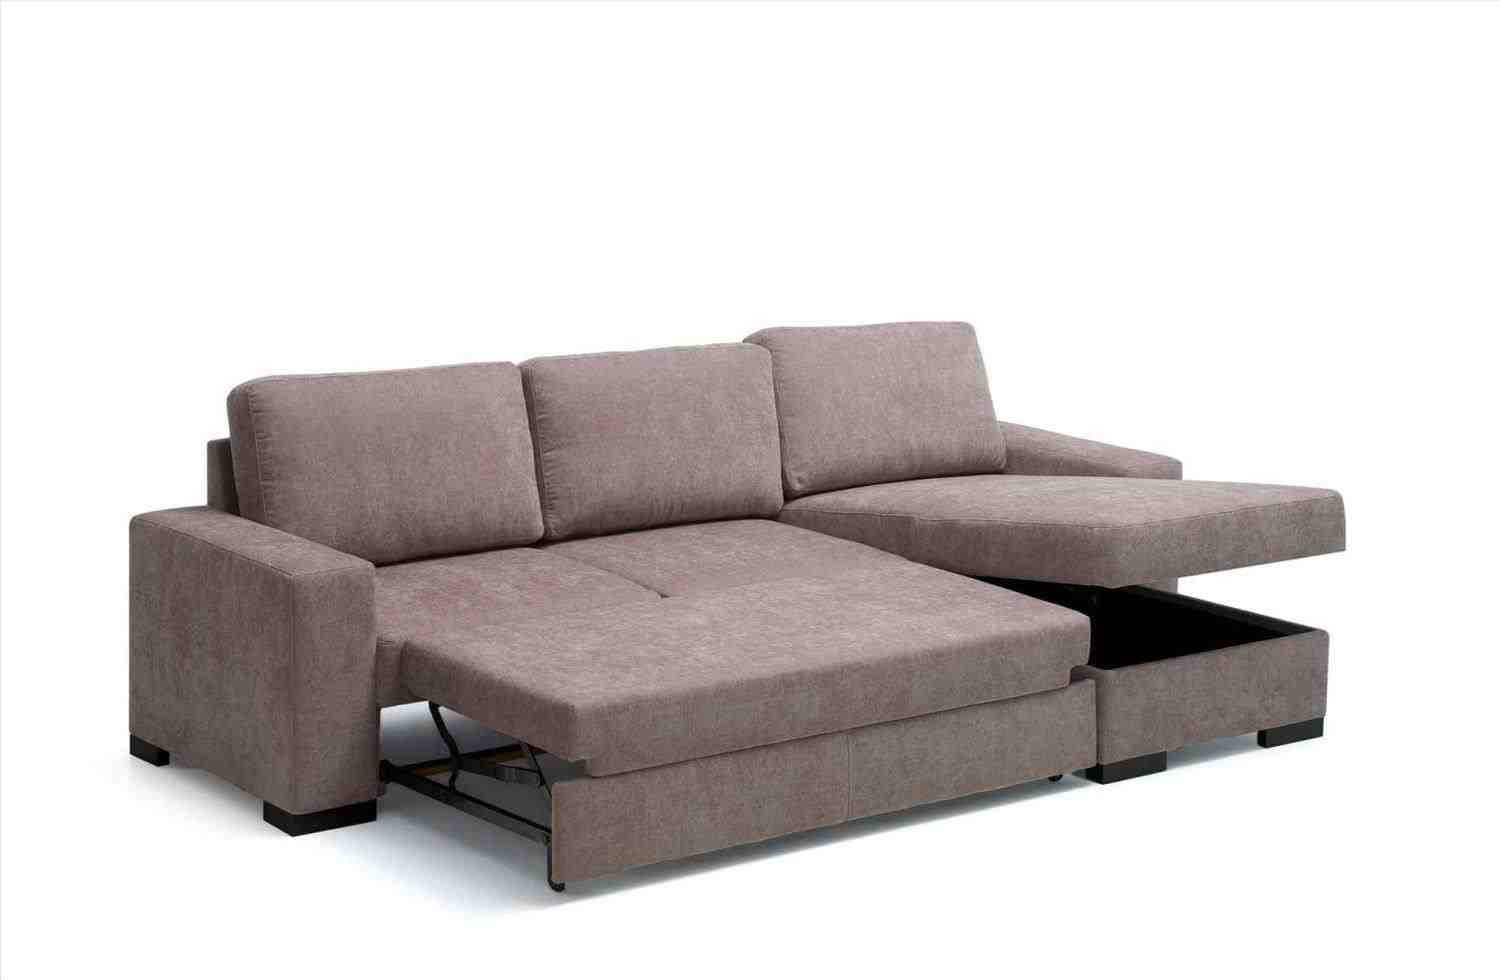 sofa chaise longue oferta barcelona